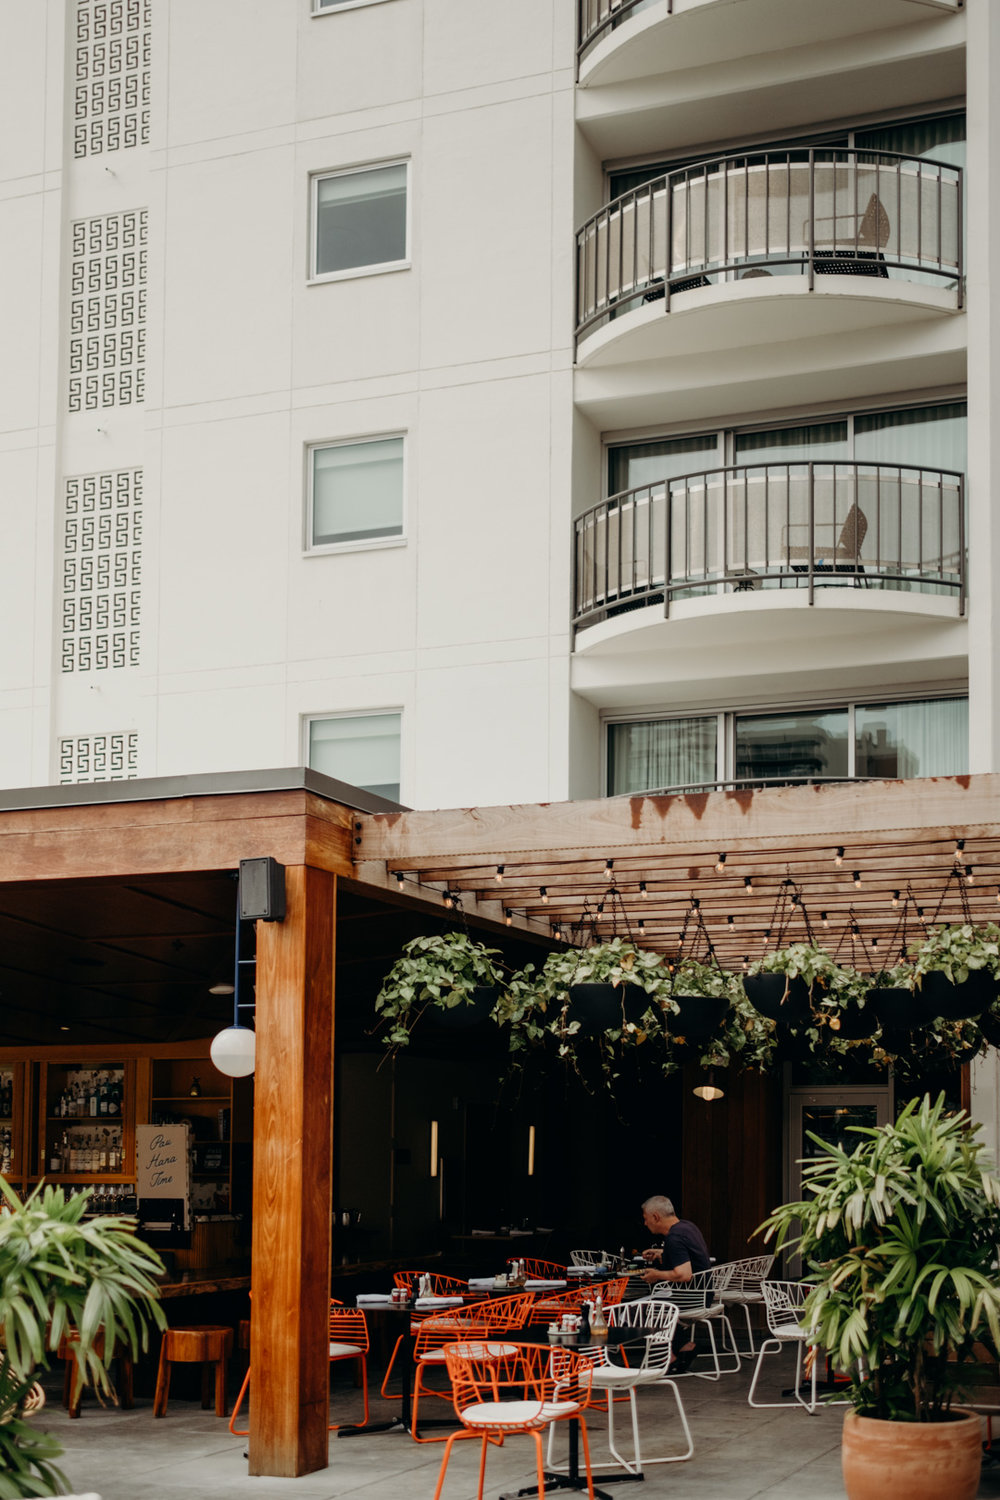 20180417_Visit Hawaii_Honolulu_The Laylow Hotel_14.jpg